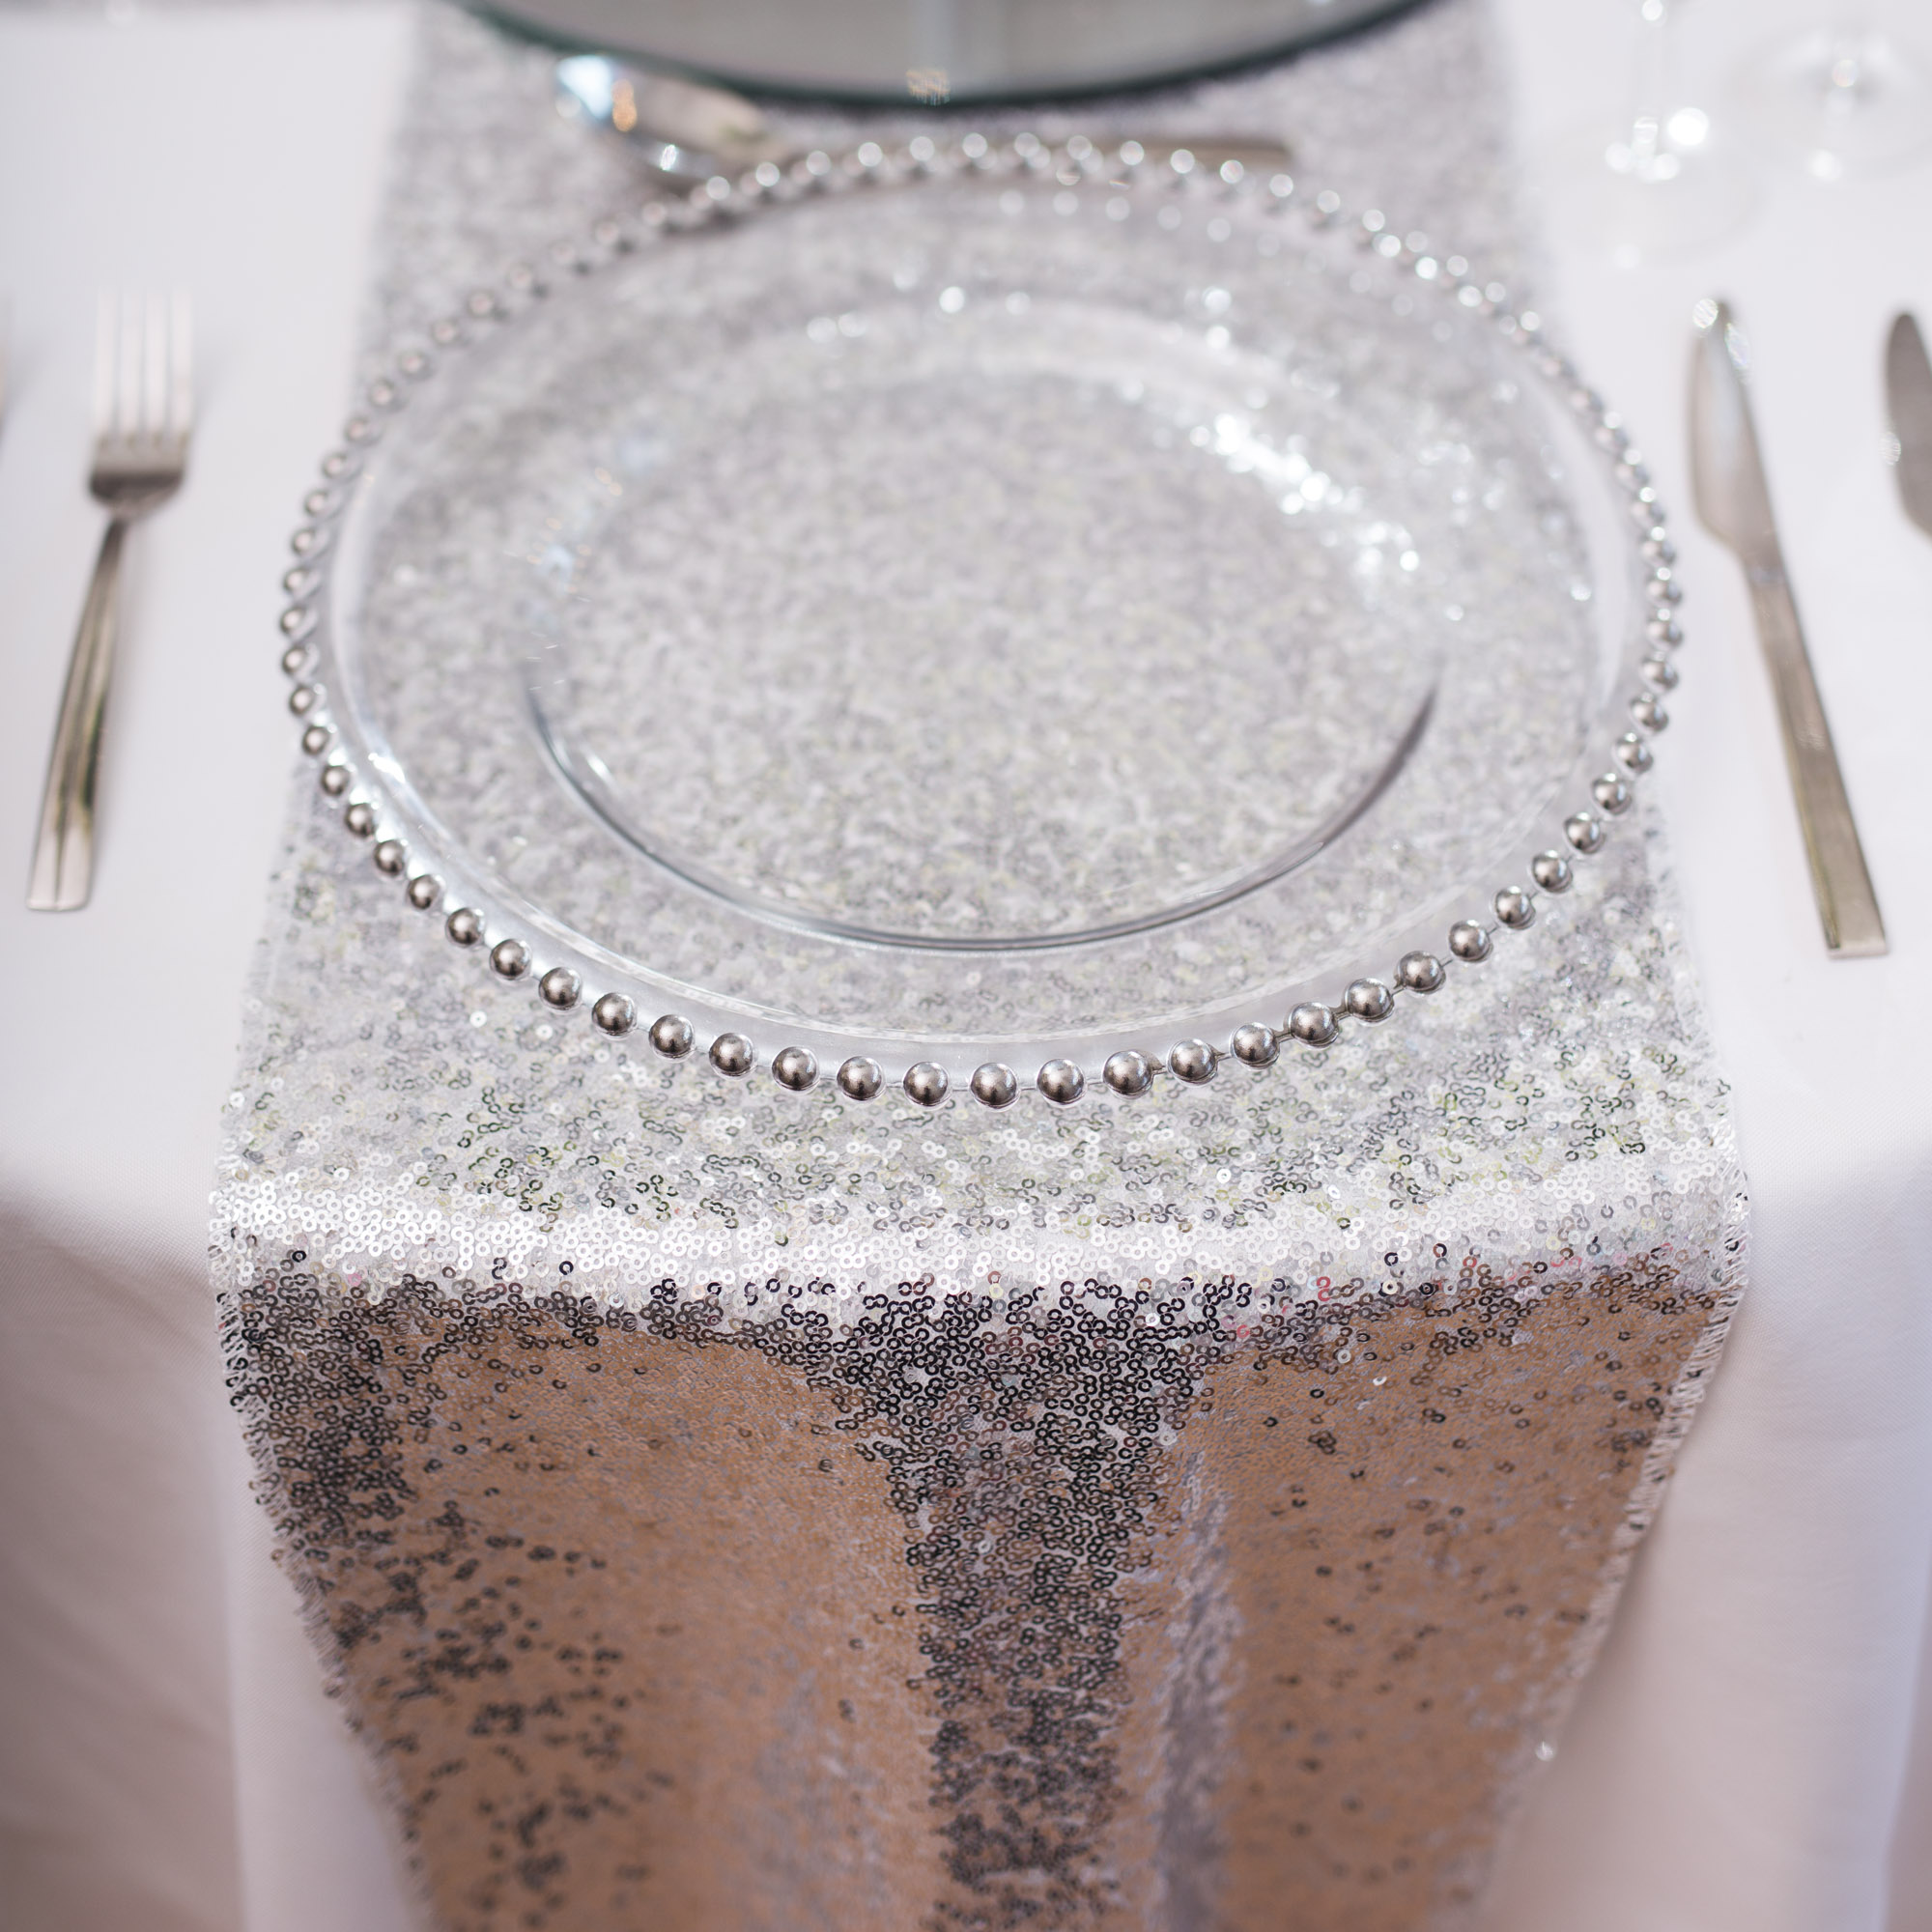 sequin chair covers uk monogrammed bean bag chairs kids silver table runner beyond expectations weddings